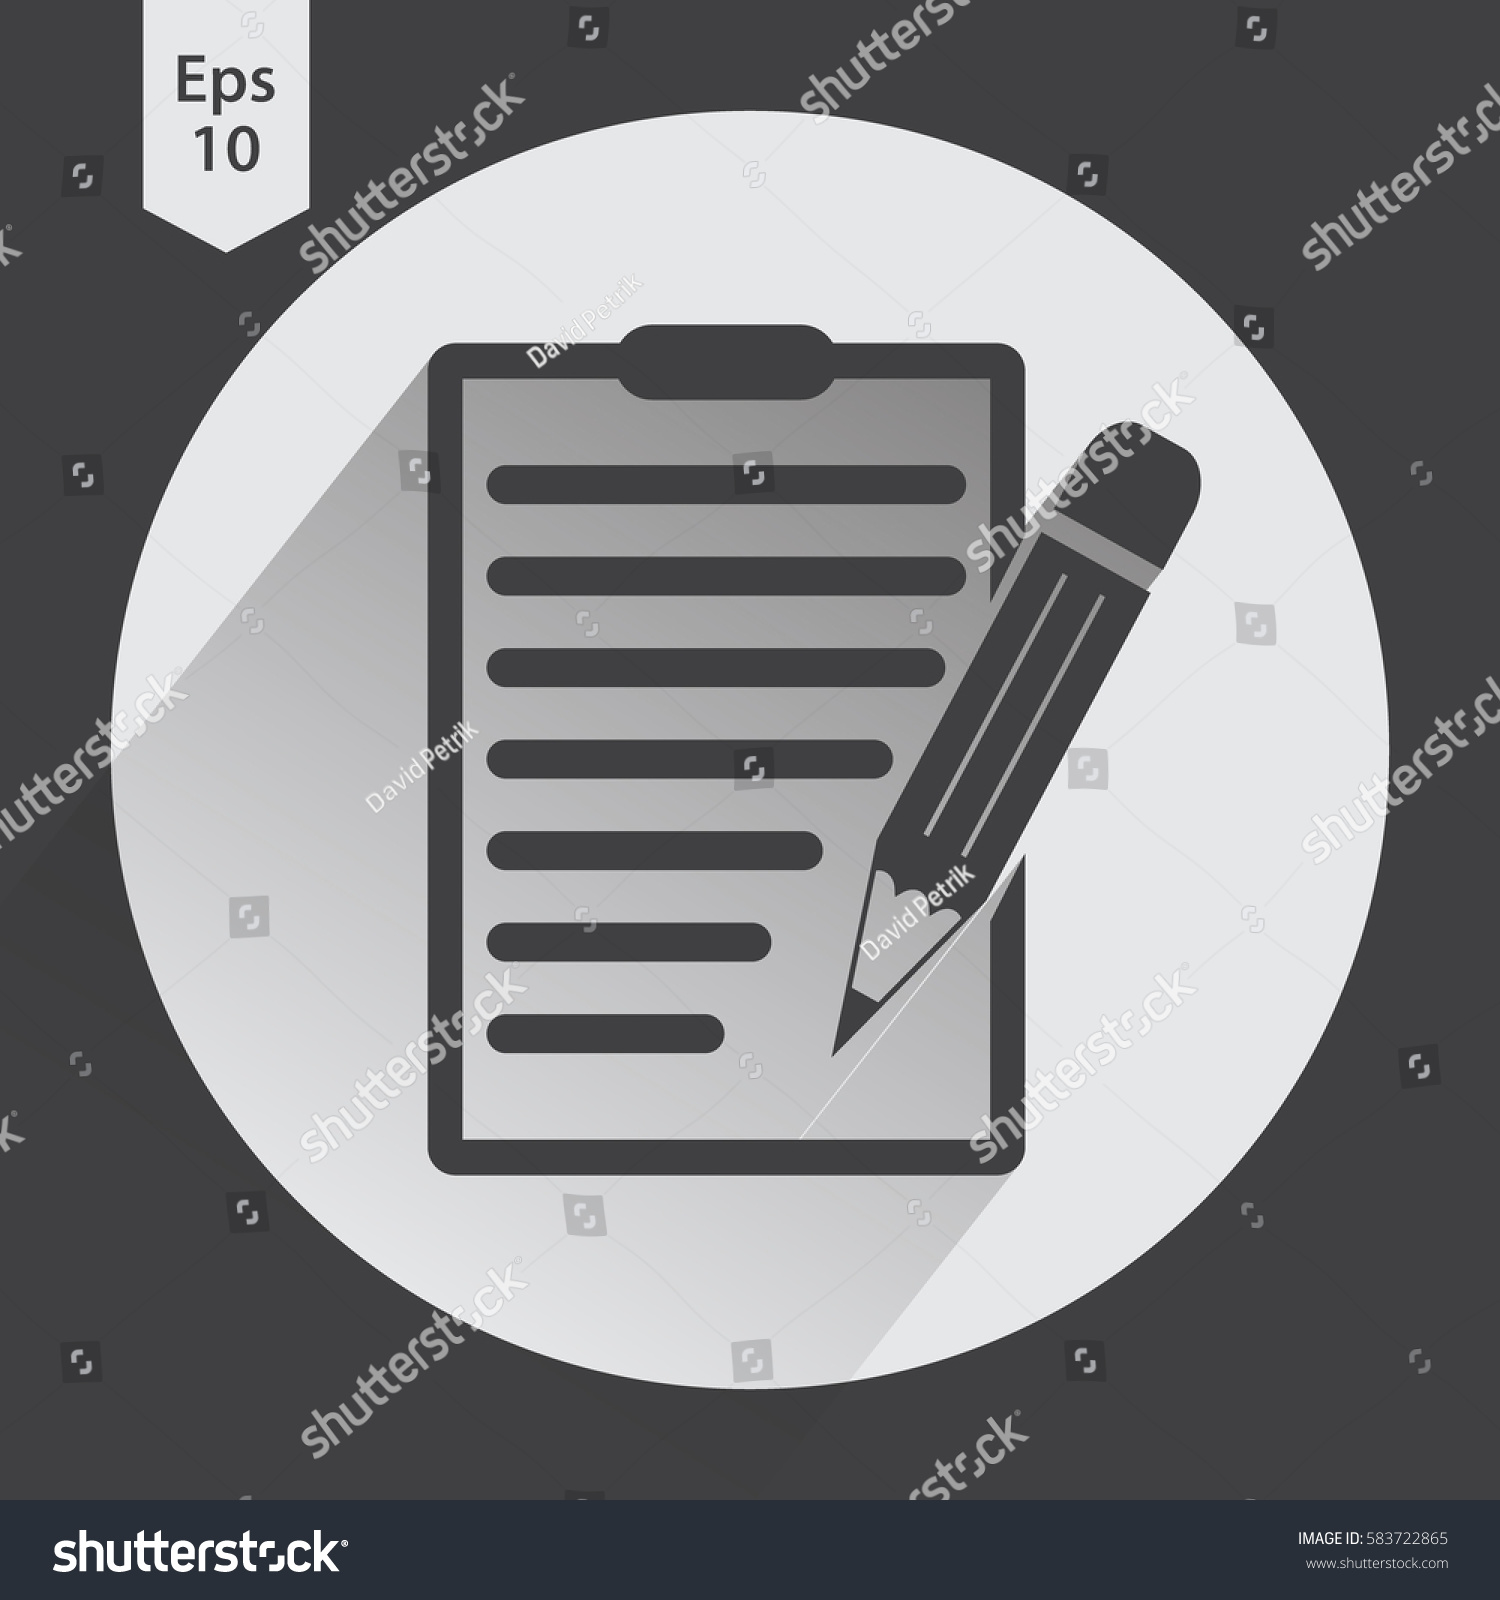 Notepad symbol simple flat icon paper stock vector 583722865 notepad symbol simple flat icon of paper and pen notebook with some text biocorpaavc Choice Image